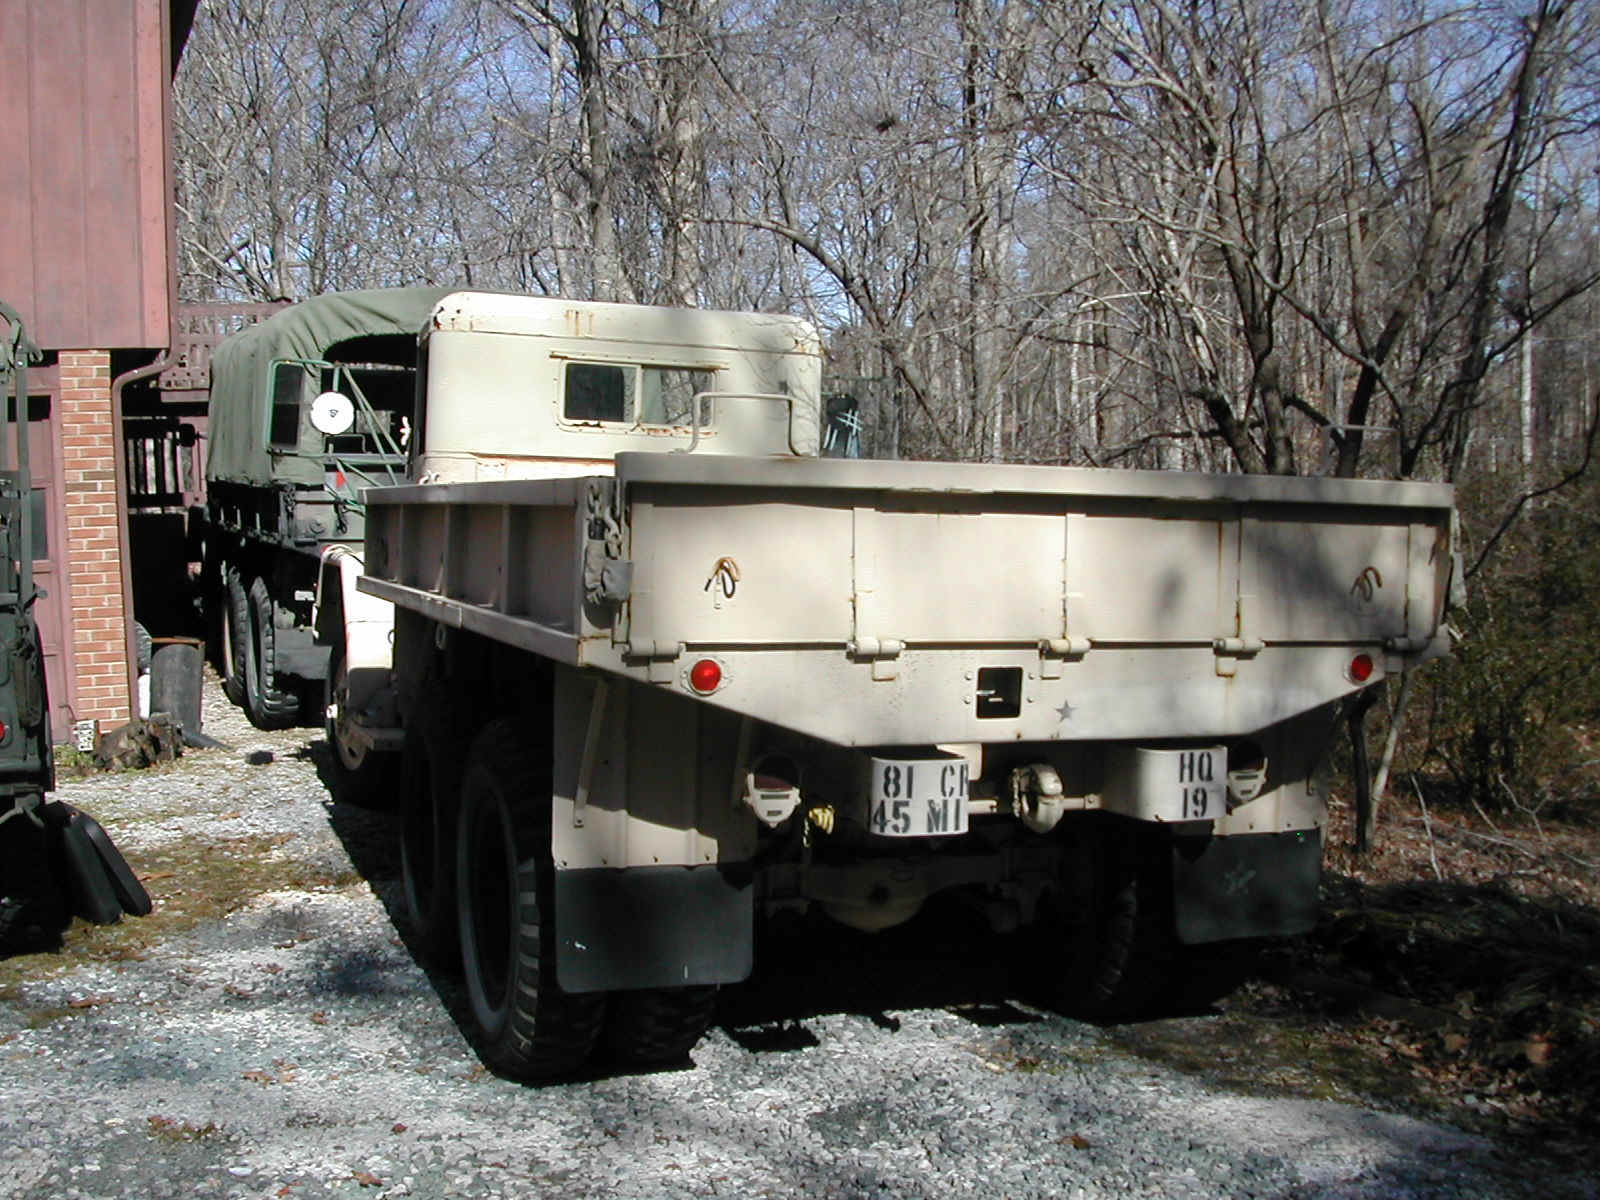 Photos of the 1967 Kaiser M35A2 on rear drive shaft, rear seat, rear lights, rear body harness,